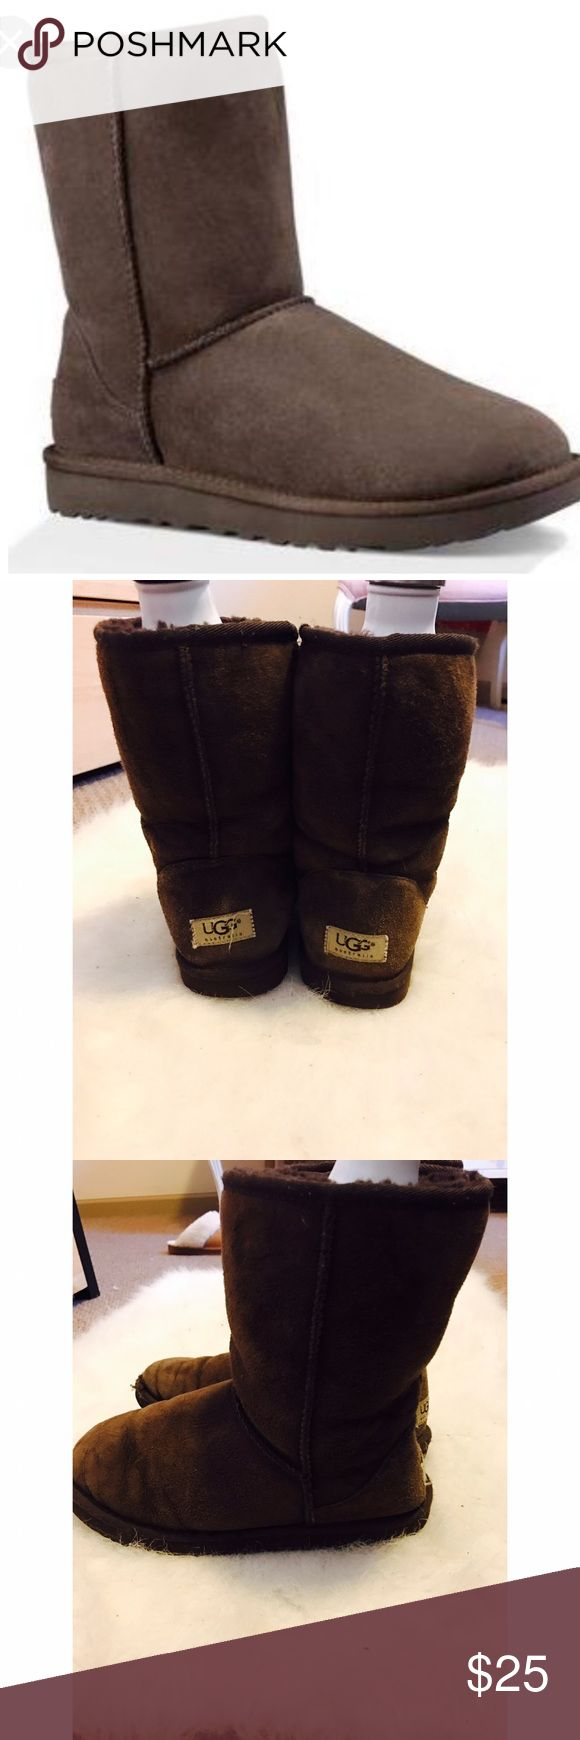 UGGS Classic Short Chocolate Boots UGG Classic short chocolate boots. Used but in okay/ good condition. Contains marks of wear. Price is final UGG Shoes Winter & Rain Boots